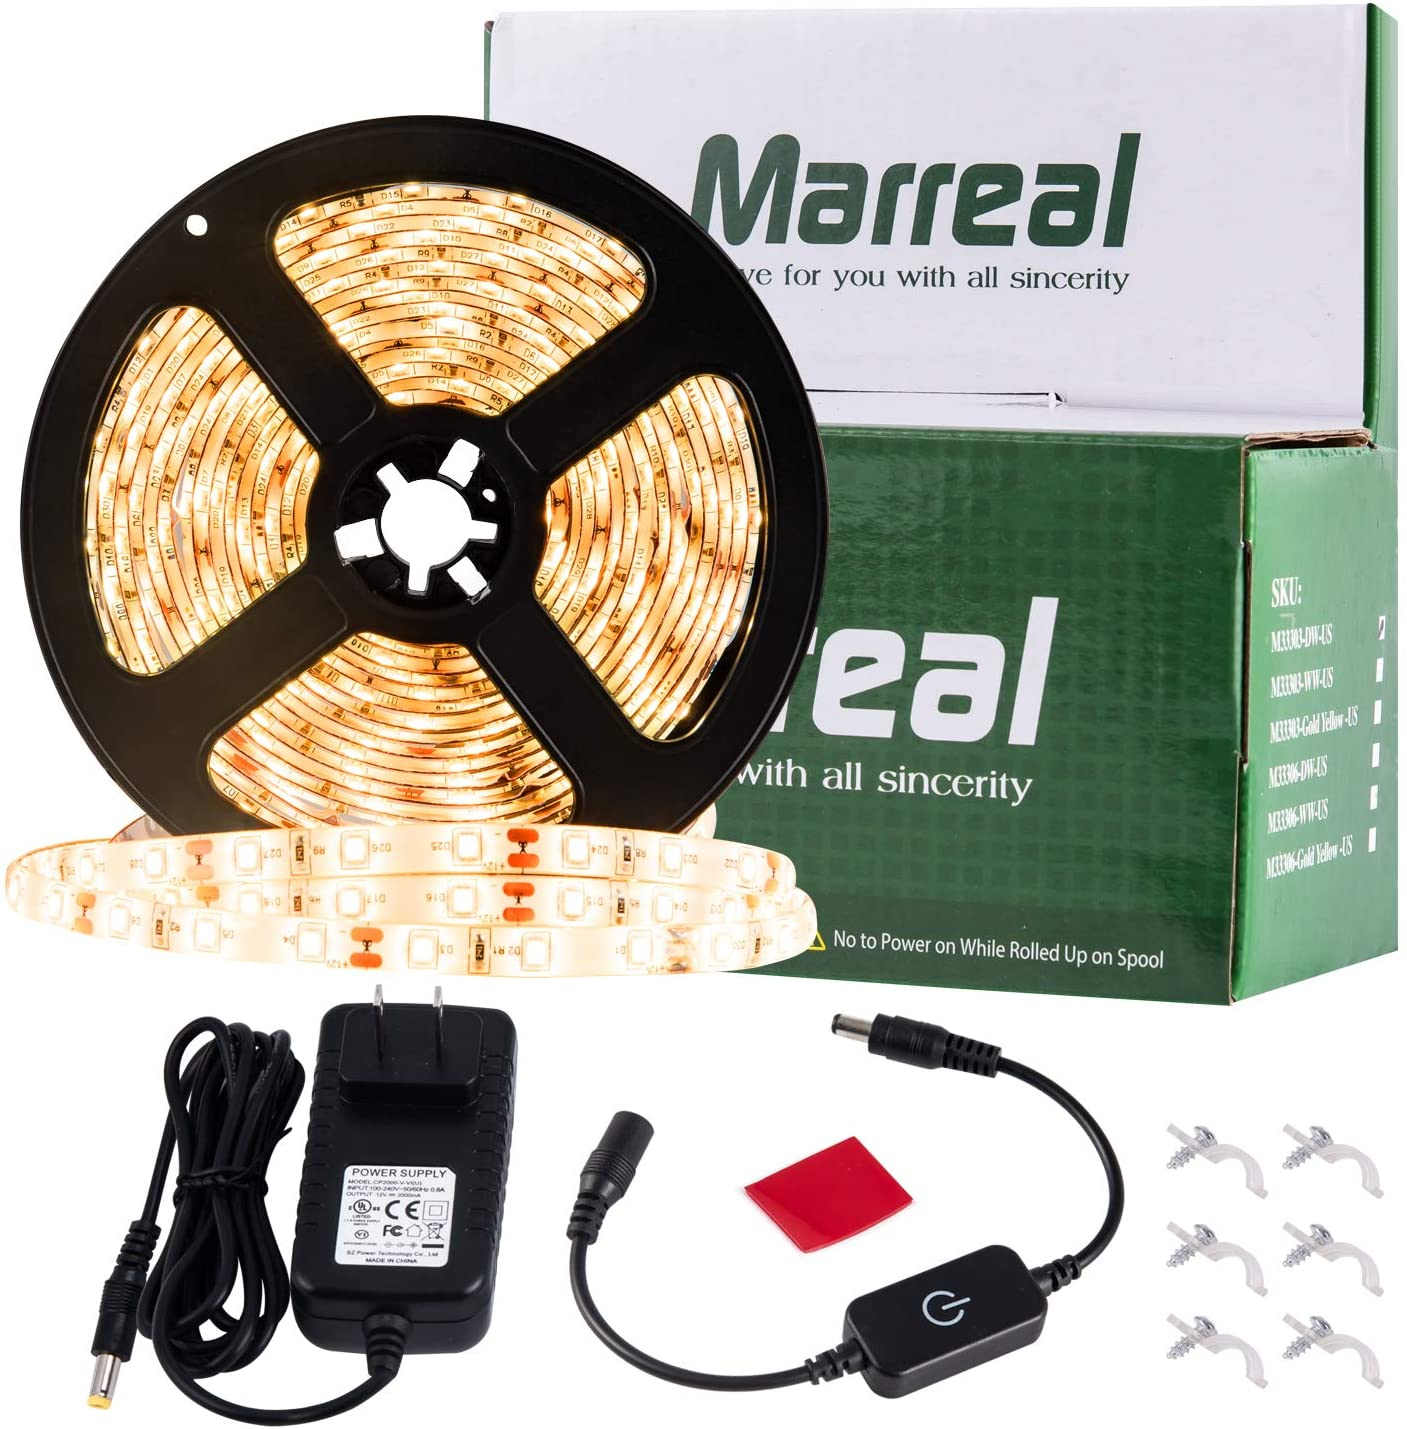 Marreal LED Strip Lights Outdoor Dimmable Gold Yellow 16.4ft/5m Waterproof Amber Rope Lights 2835 300LEDs Super-Adhesive with UL-Listed Power Adapter for Cabinet Bar Party Bedroom Decor